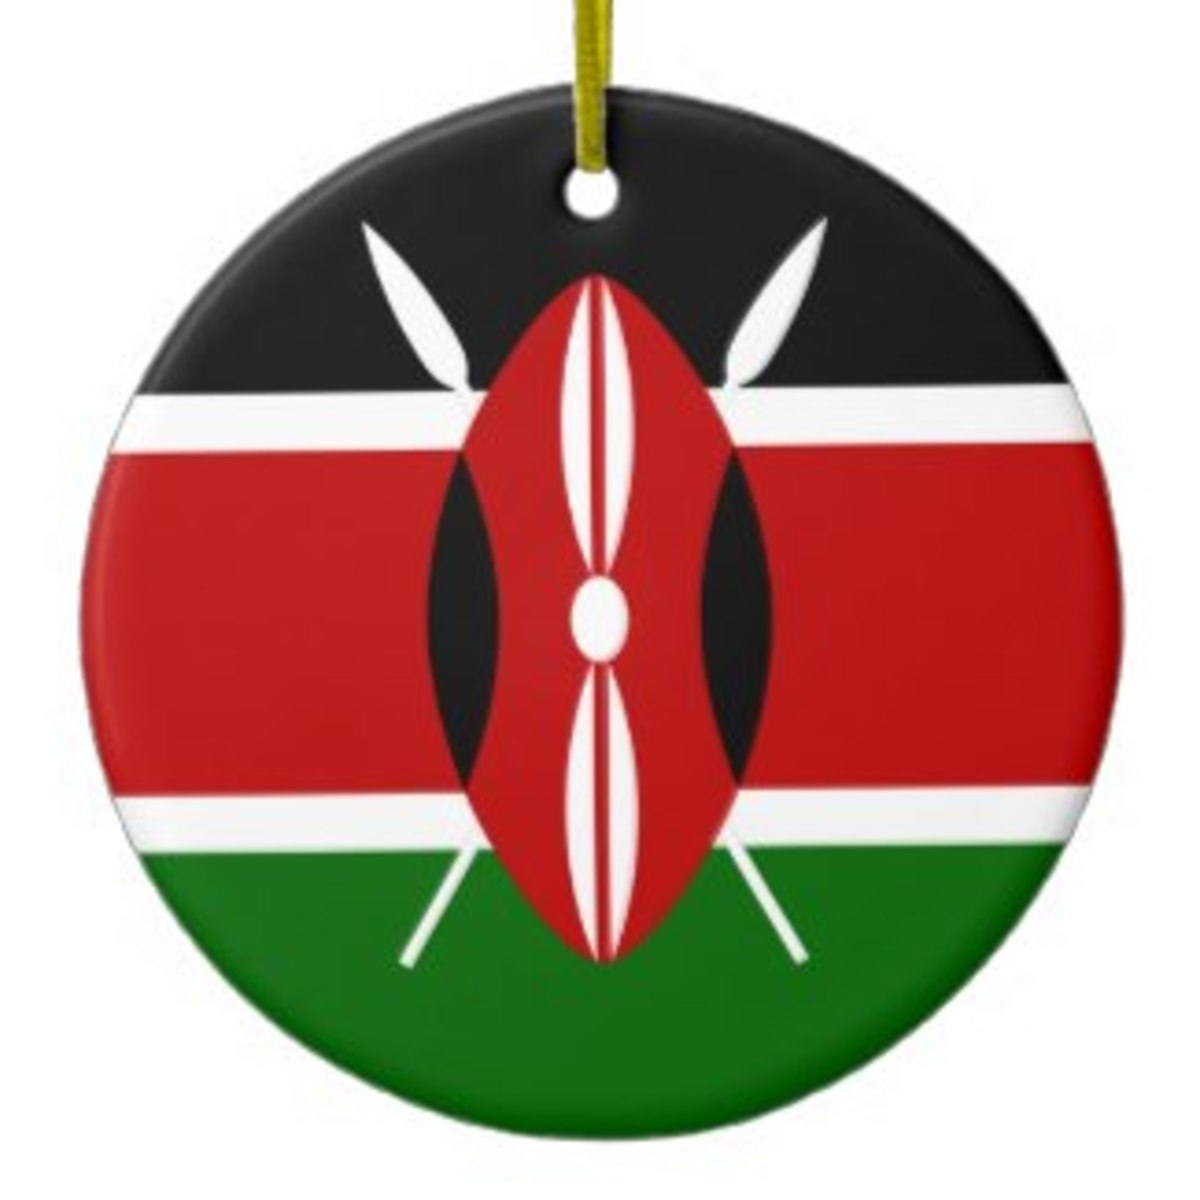 This one represents the Kenyan flag, but all the other countries are represented with different shapes like hearts or stars featuring the colors of their flags.